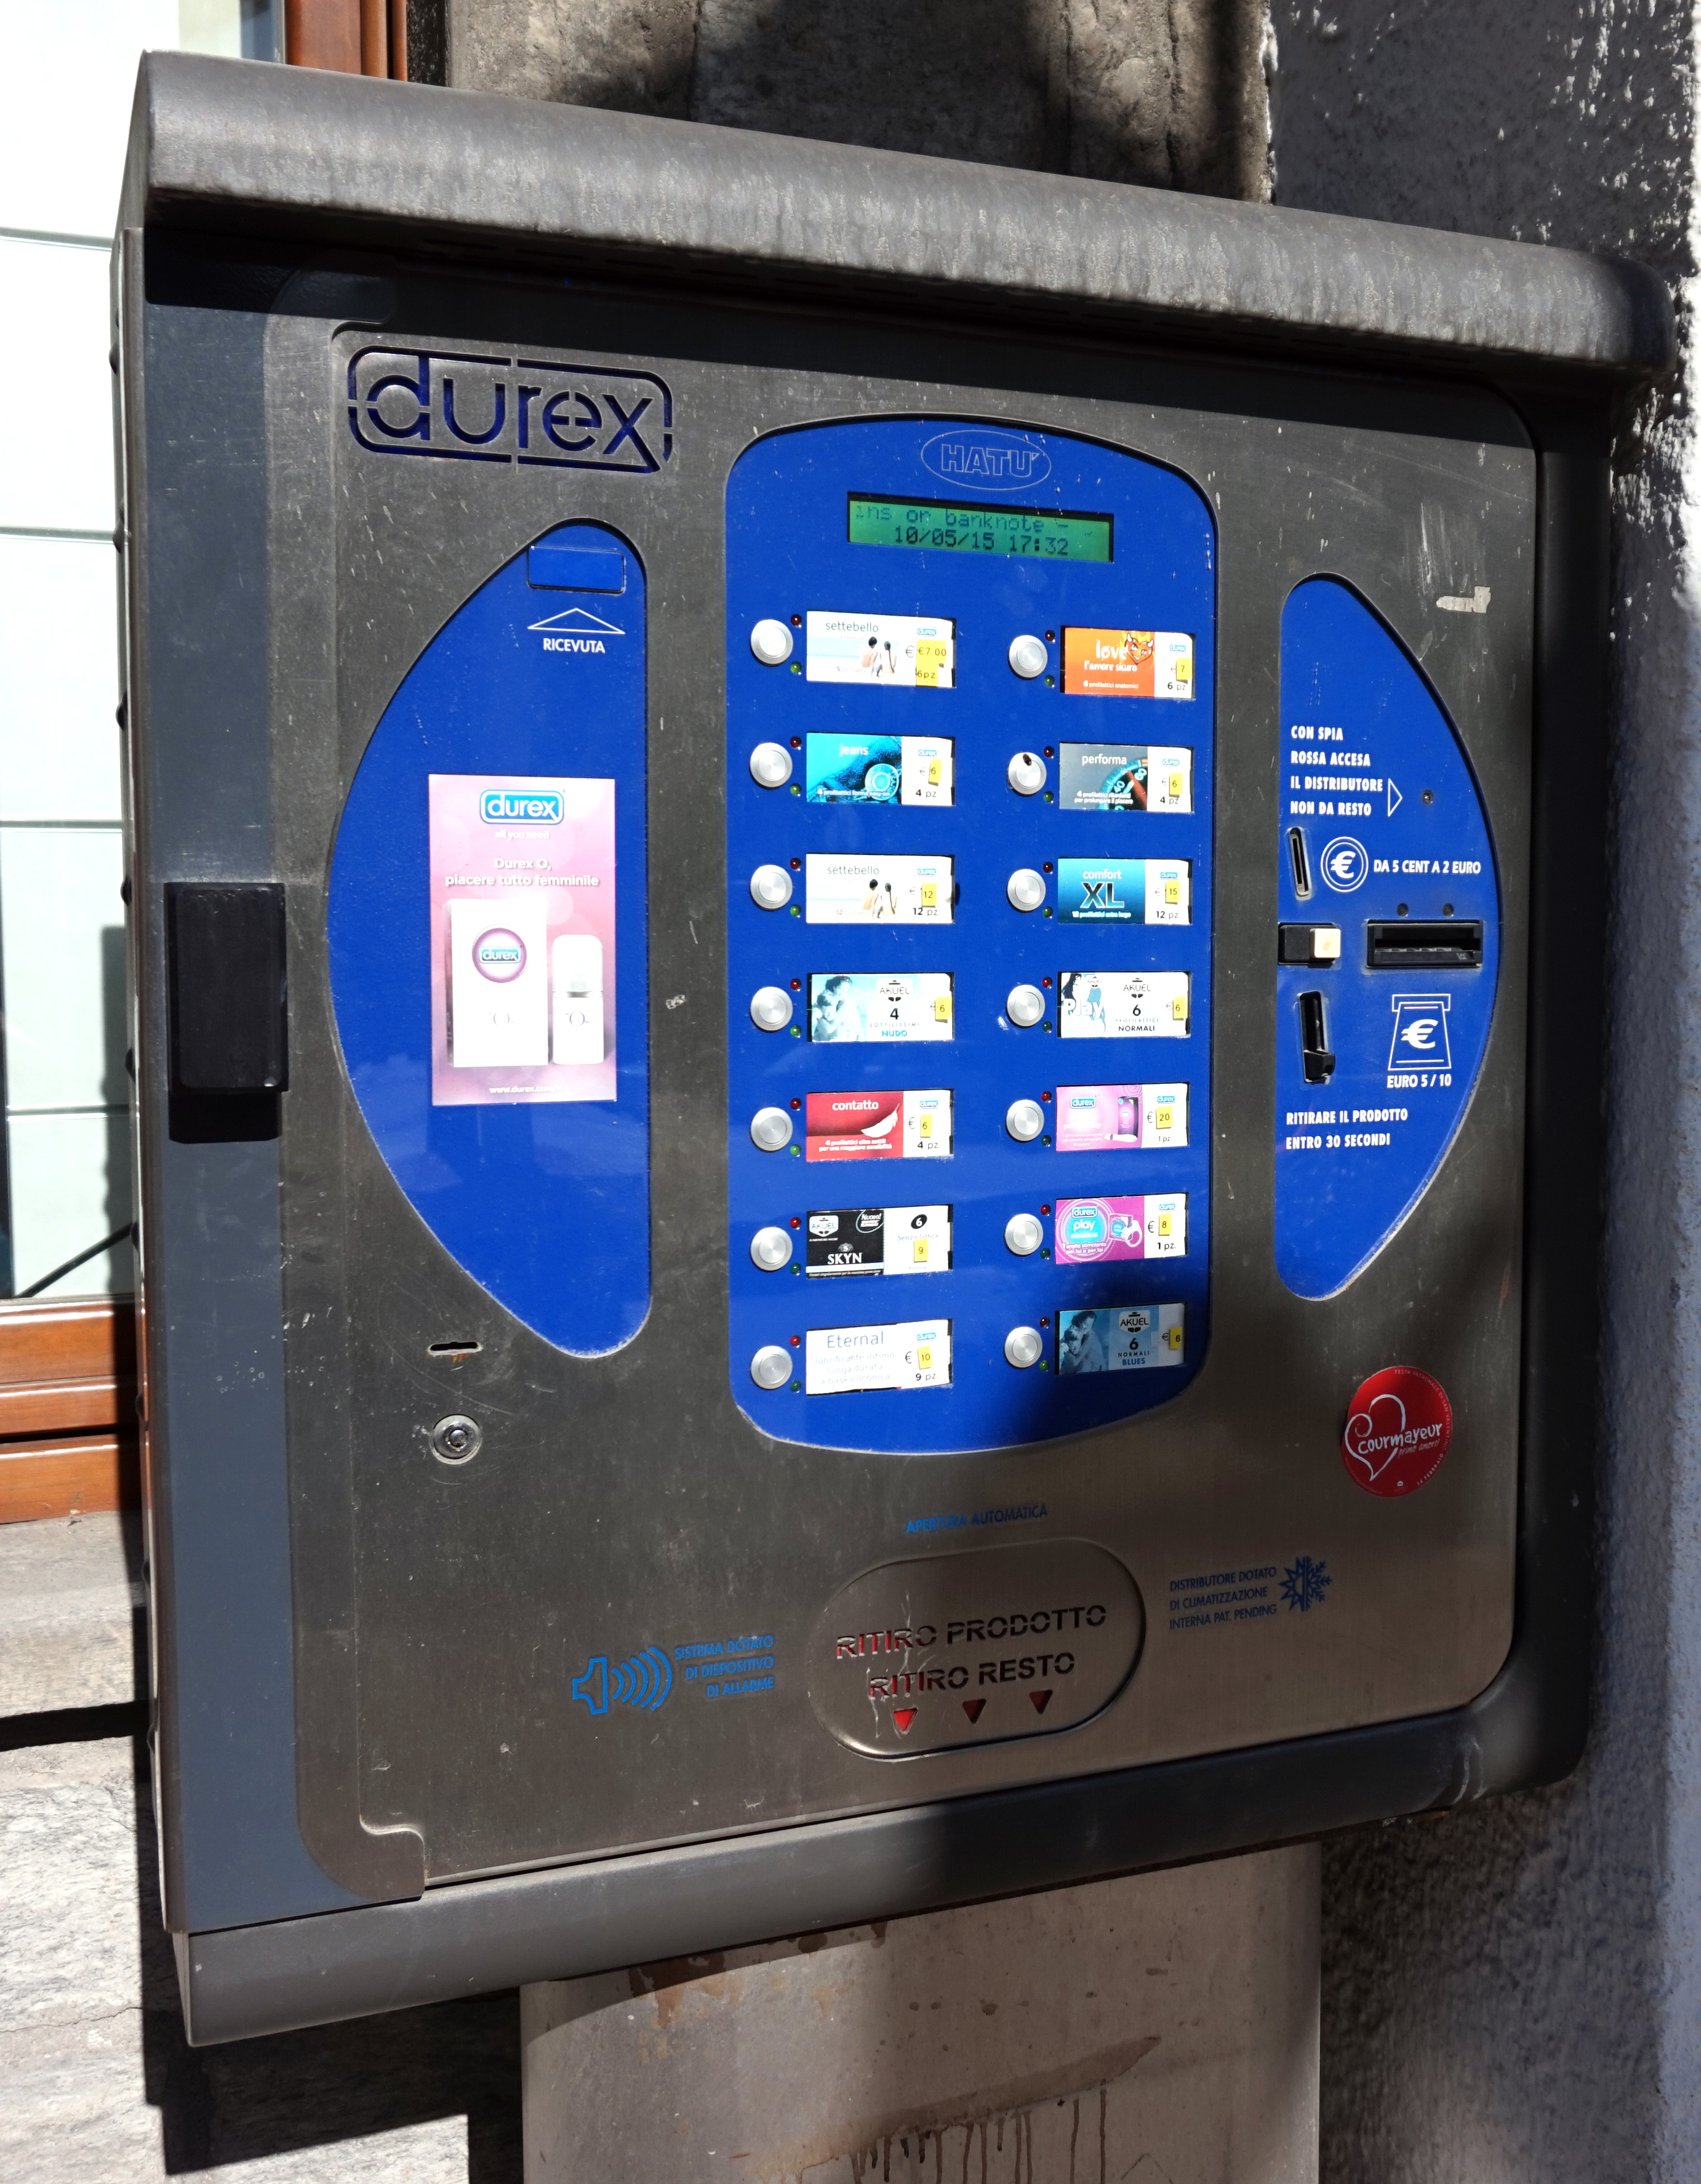 Condom vending machines